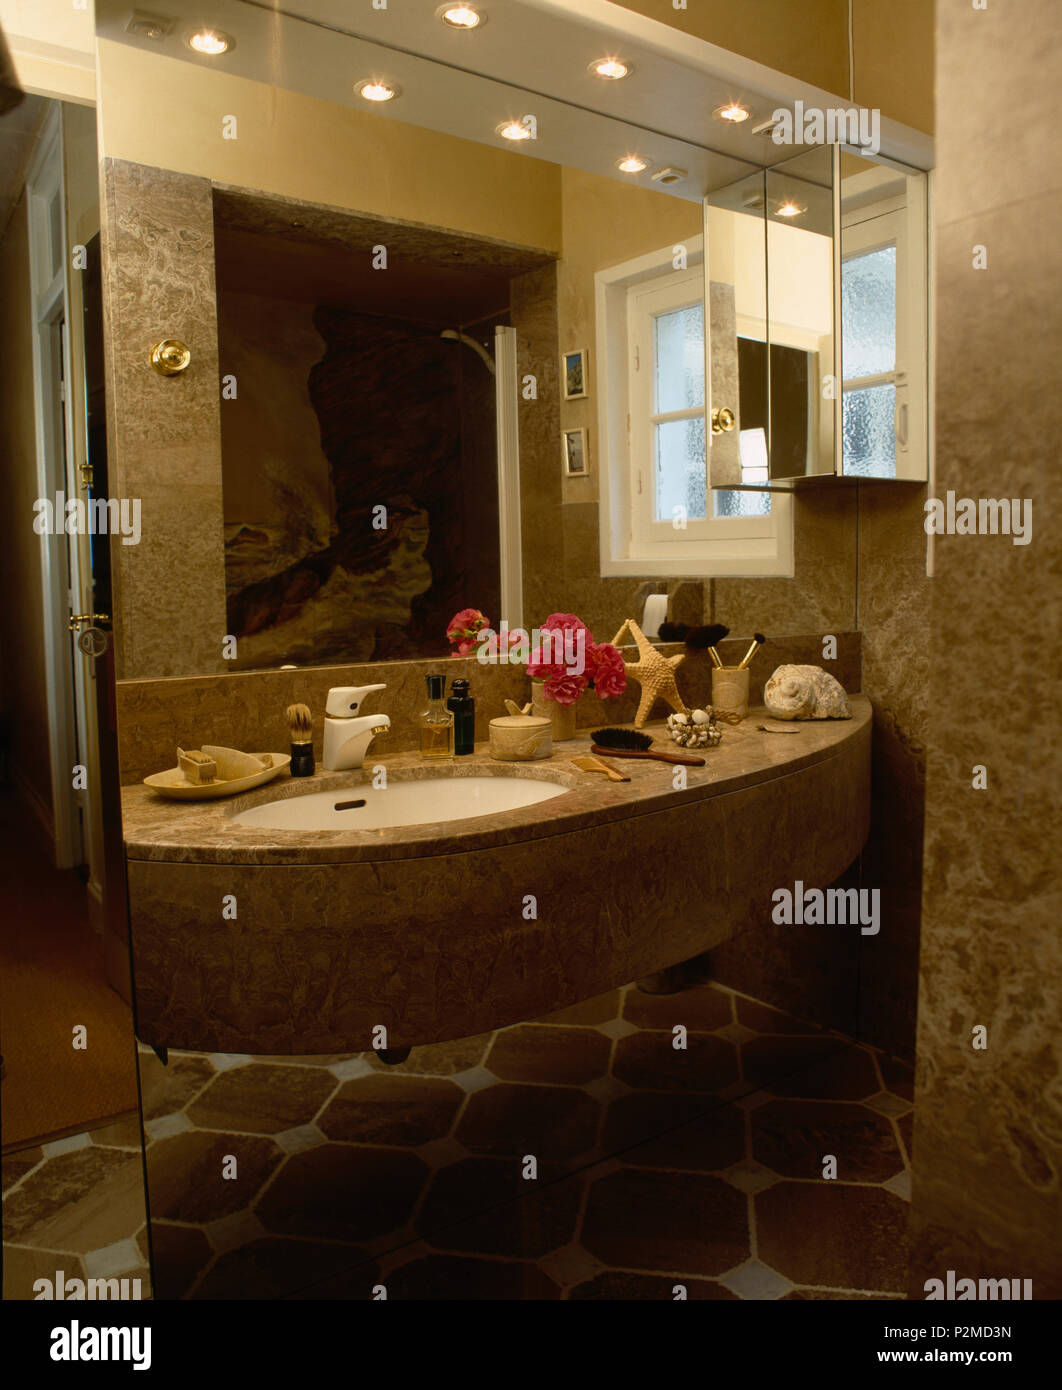 Recessed lighting and mirror above marble vanity unit with under-set basin in bathroom - Stock Image